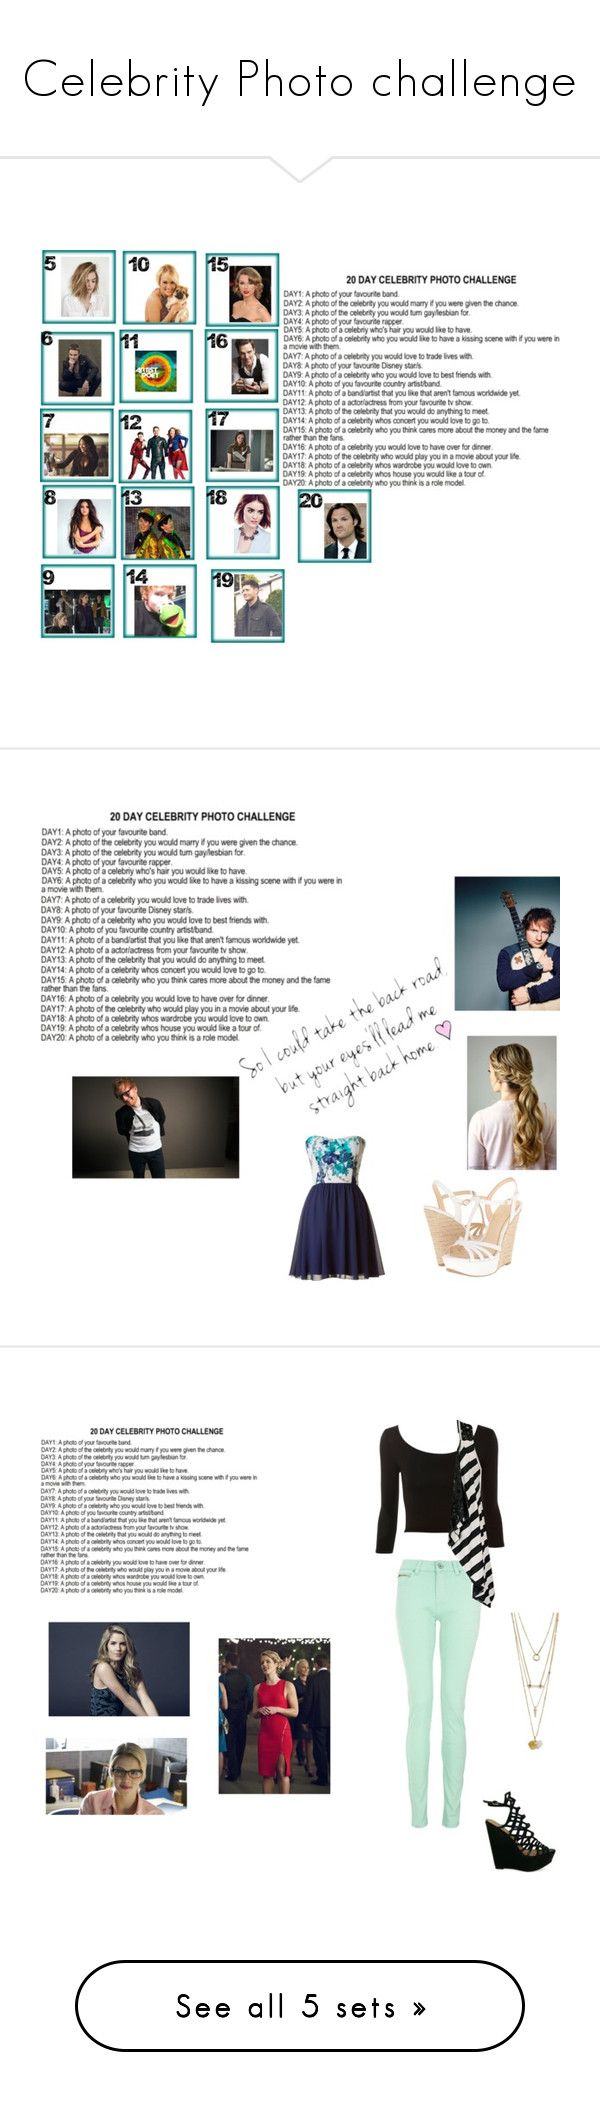 """""""Celebrity Photo challenge"""" by mercy-xix ❤ liked on Polyvore featuring art, Jessica Simpson, Quiz, Daytrip, Camille la Vie and Jimmy Choo"""